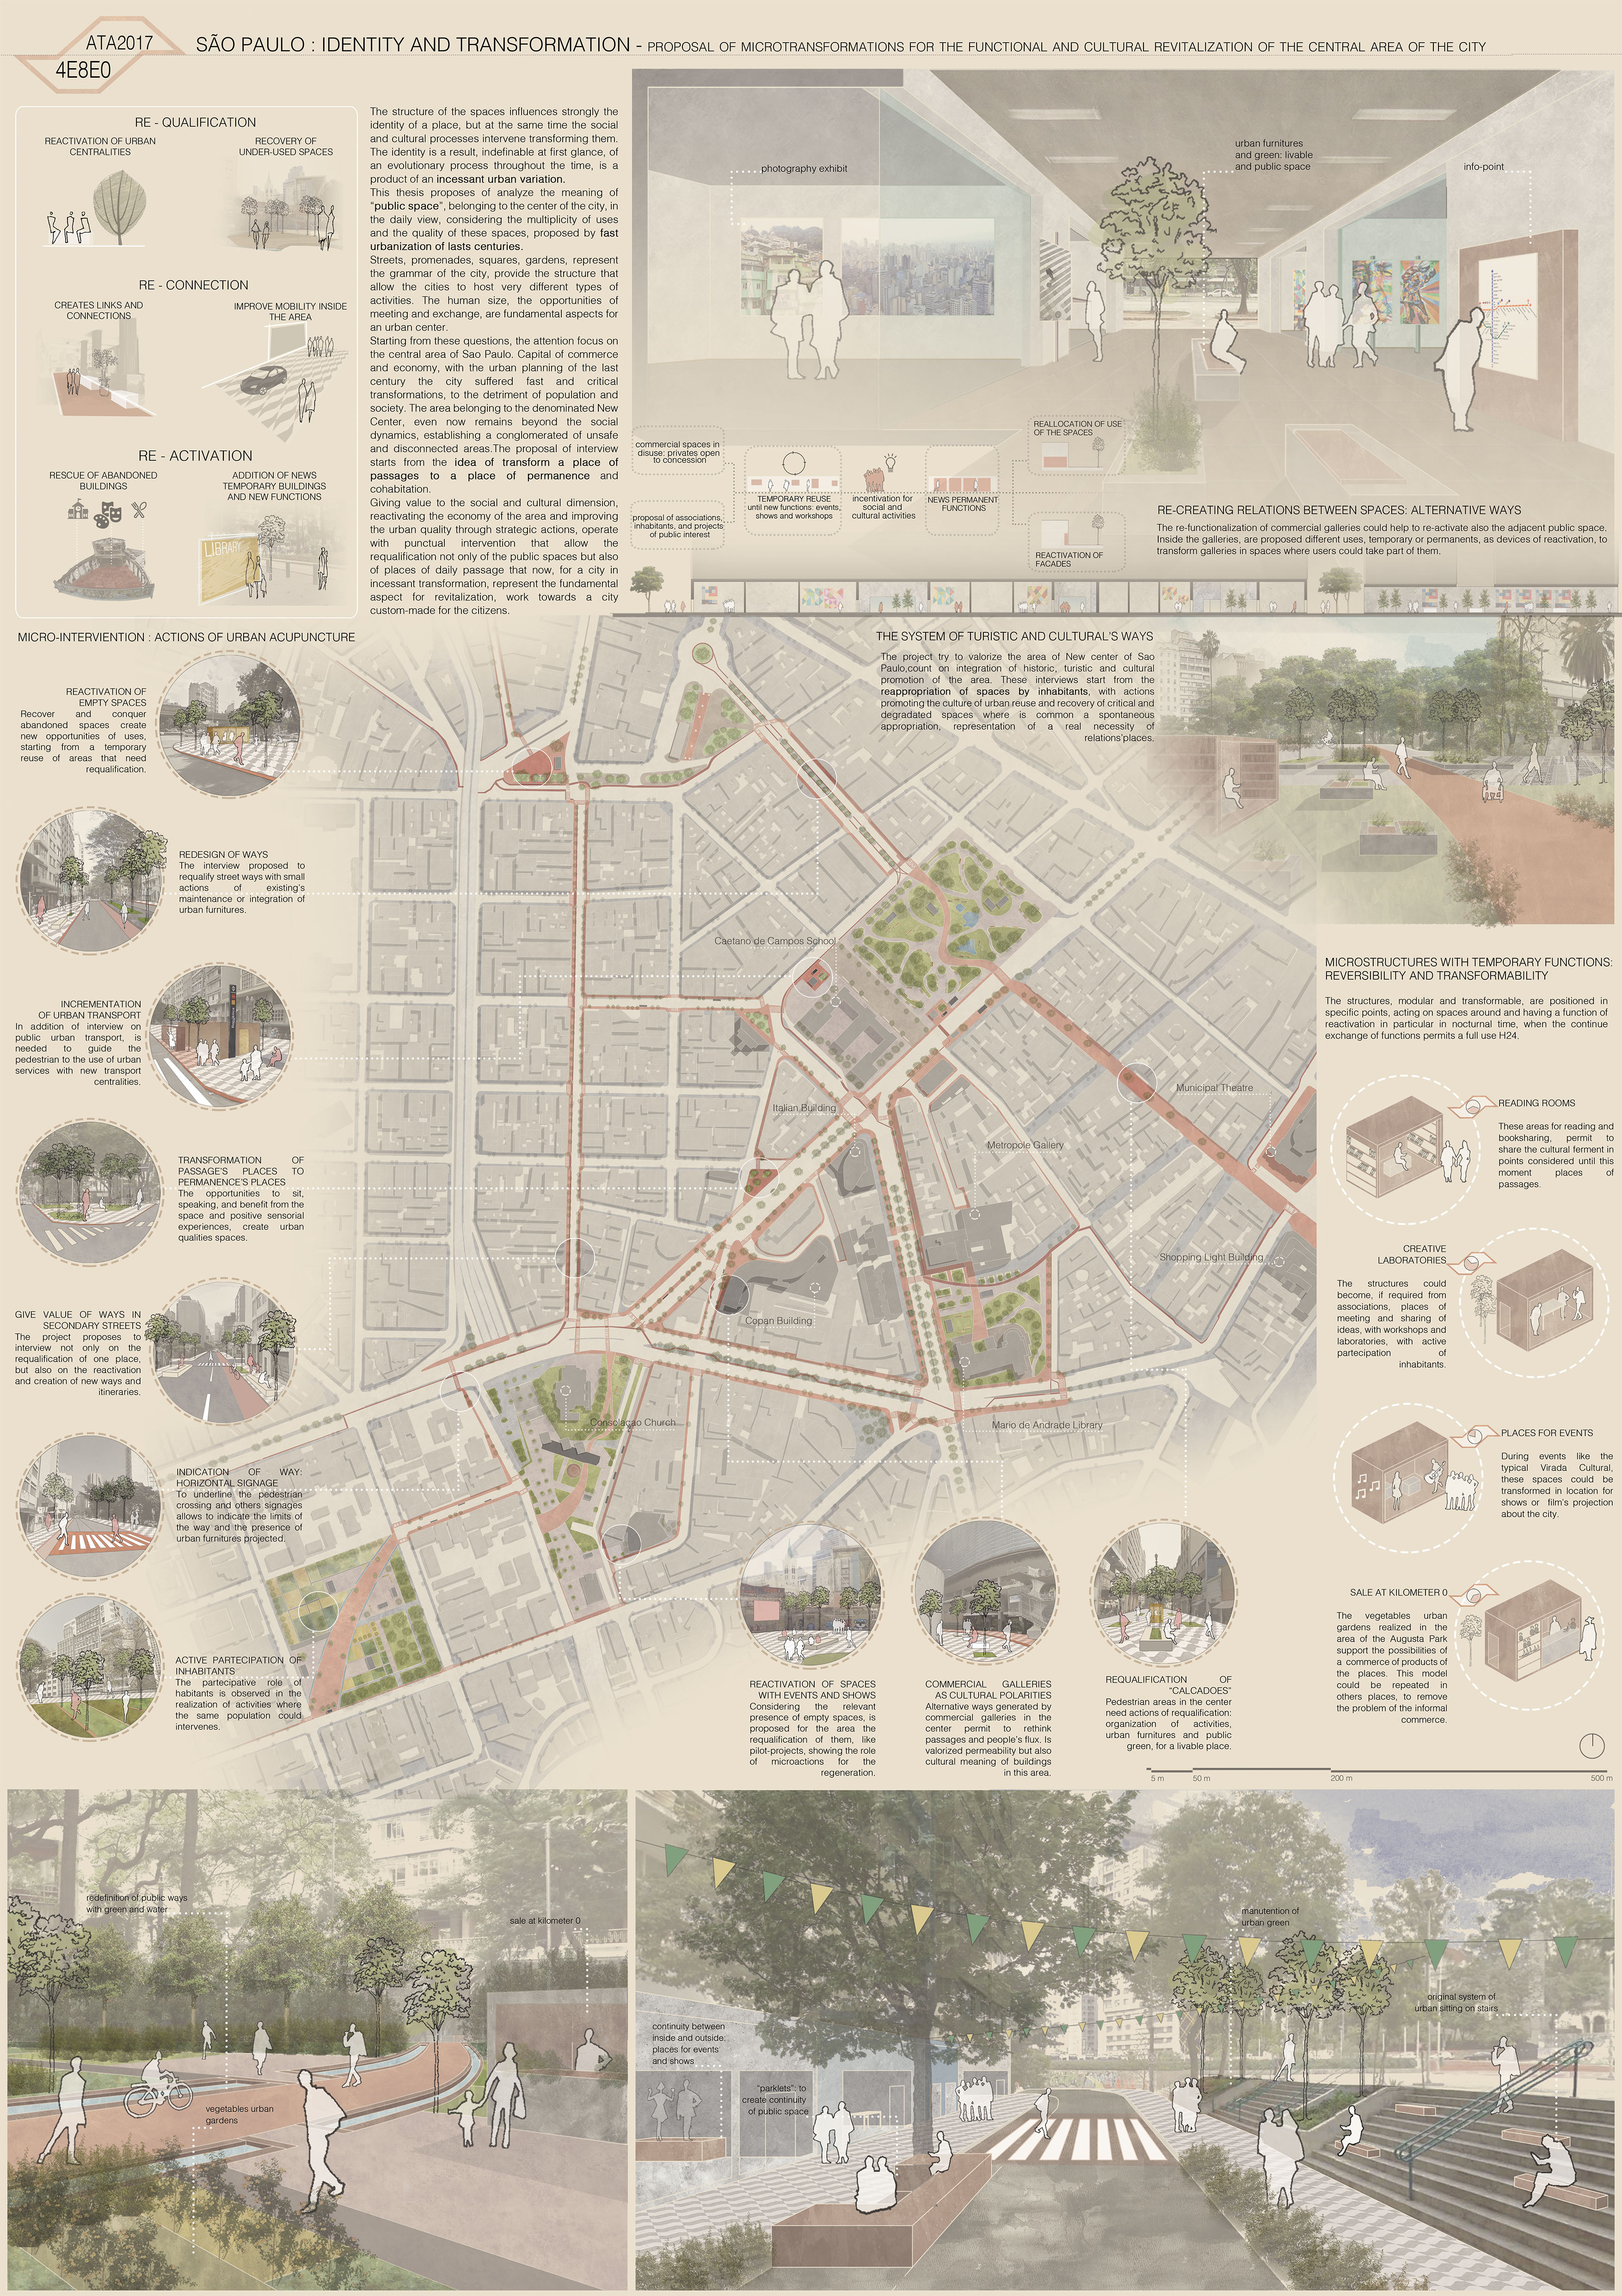 SÃO PAULO : IDENTITY AND TRANSFORMATION – Proposal of microtransformations for the functional and cultural revitalization of the central area of the city Board